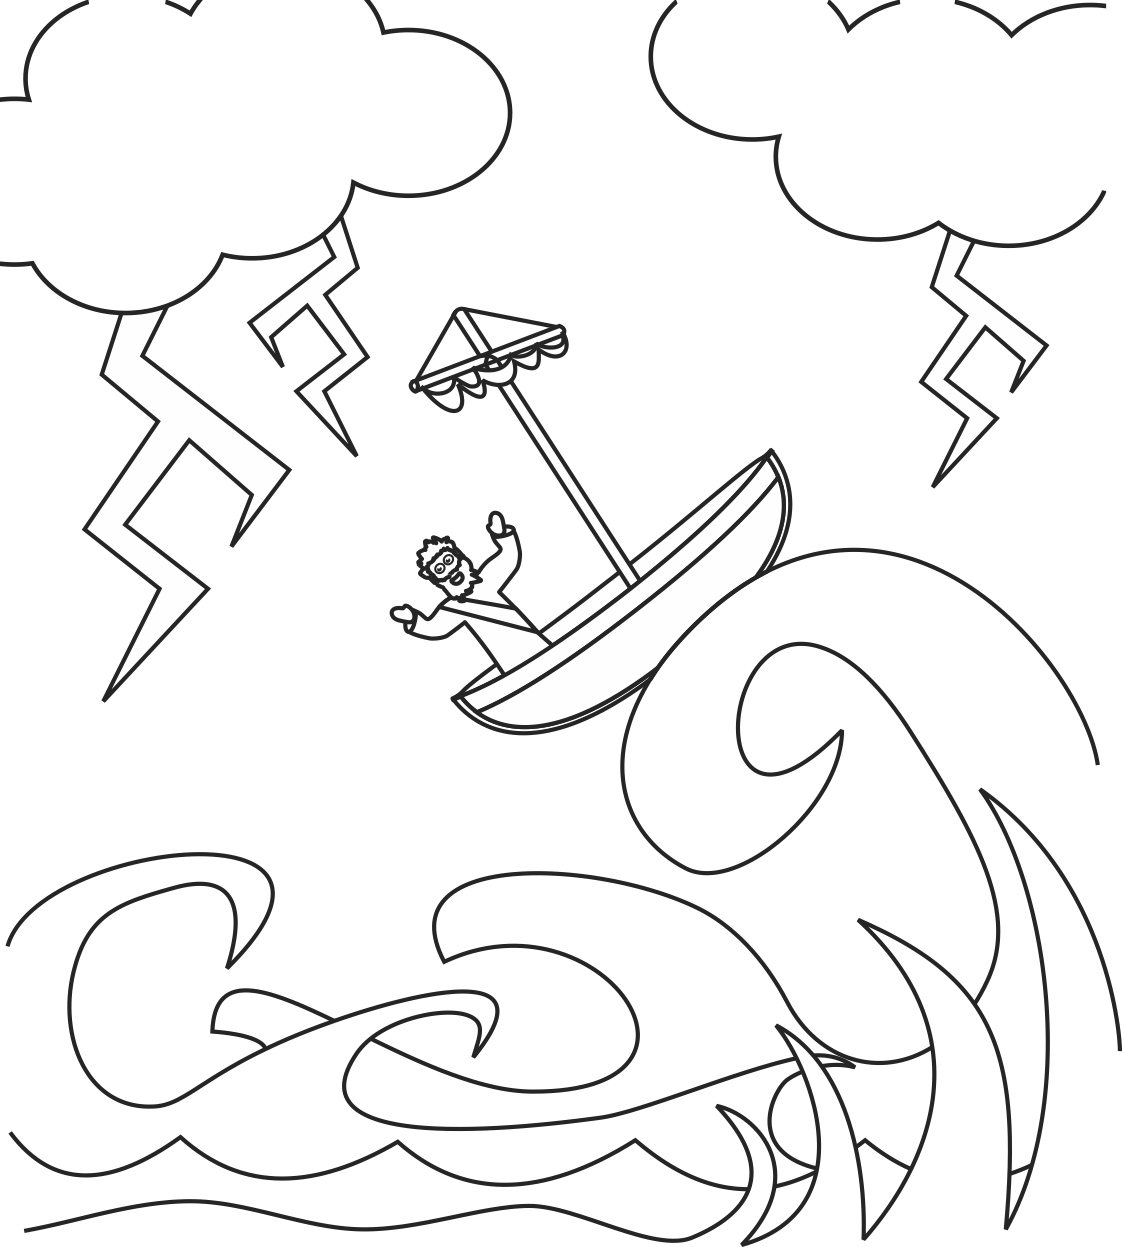 calming coloring pages for children - photo#13